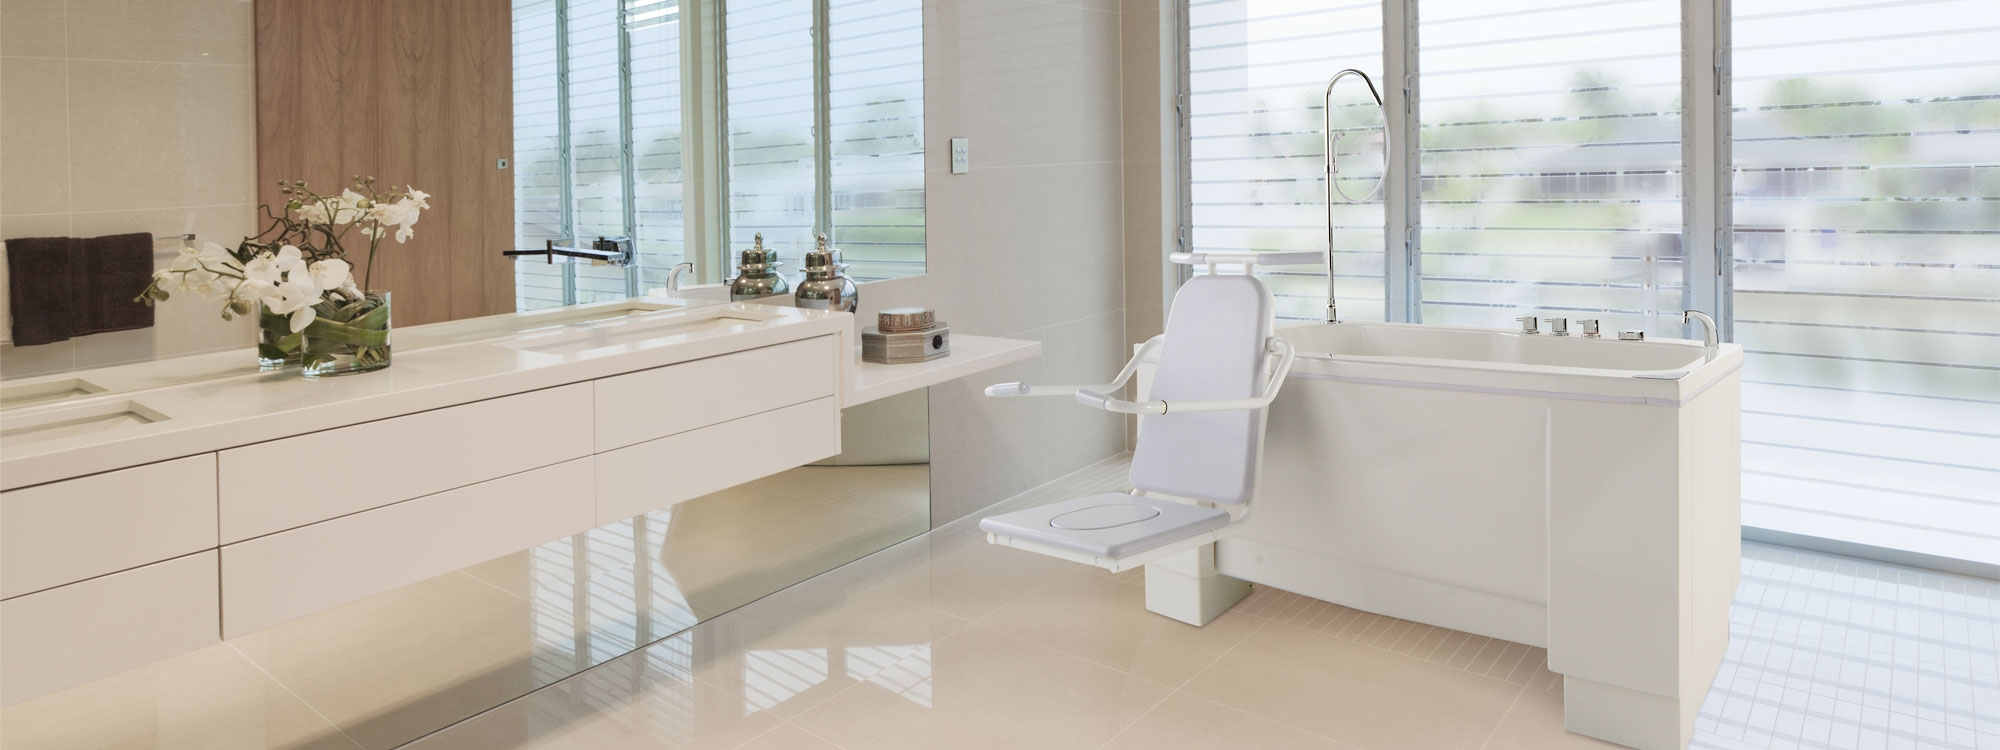 Bespoke Assisted Disabled Baths Design Fit By More Ability